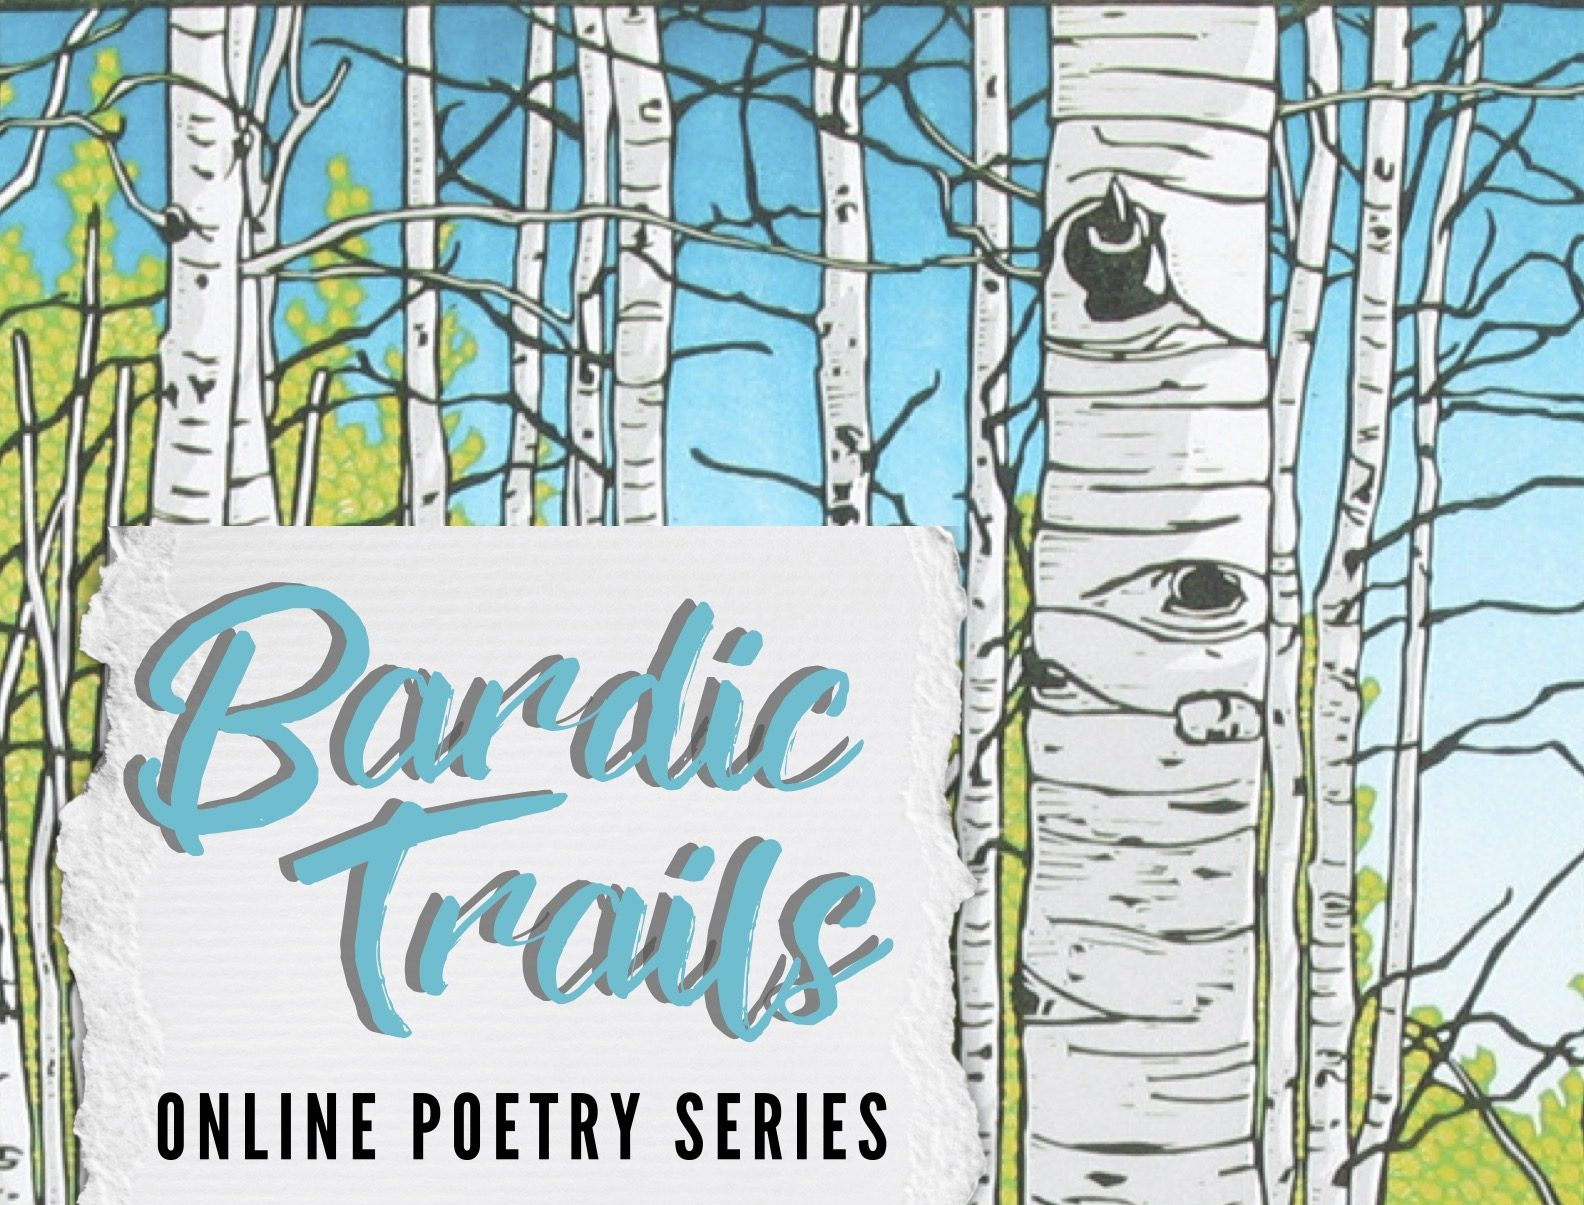 June 1st Bardic Trails Zoom series with Melissa Studdard!